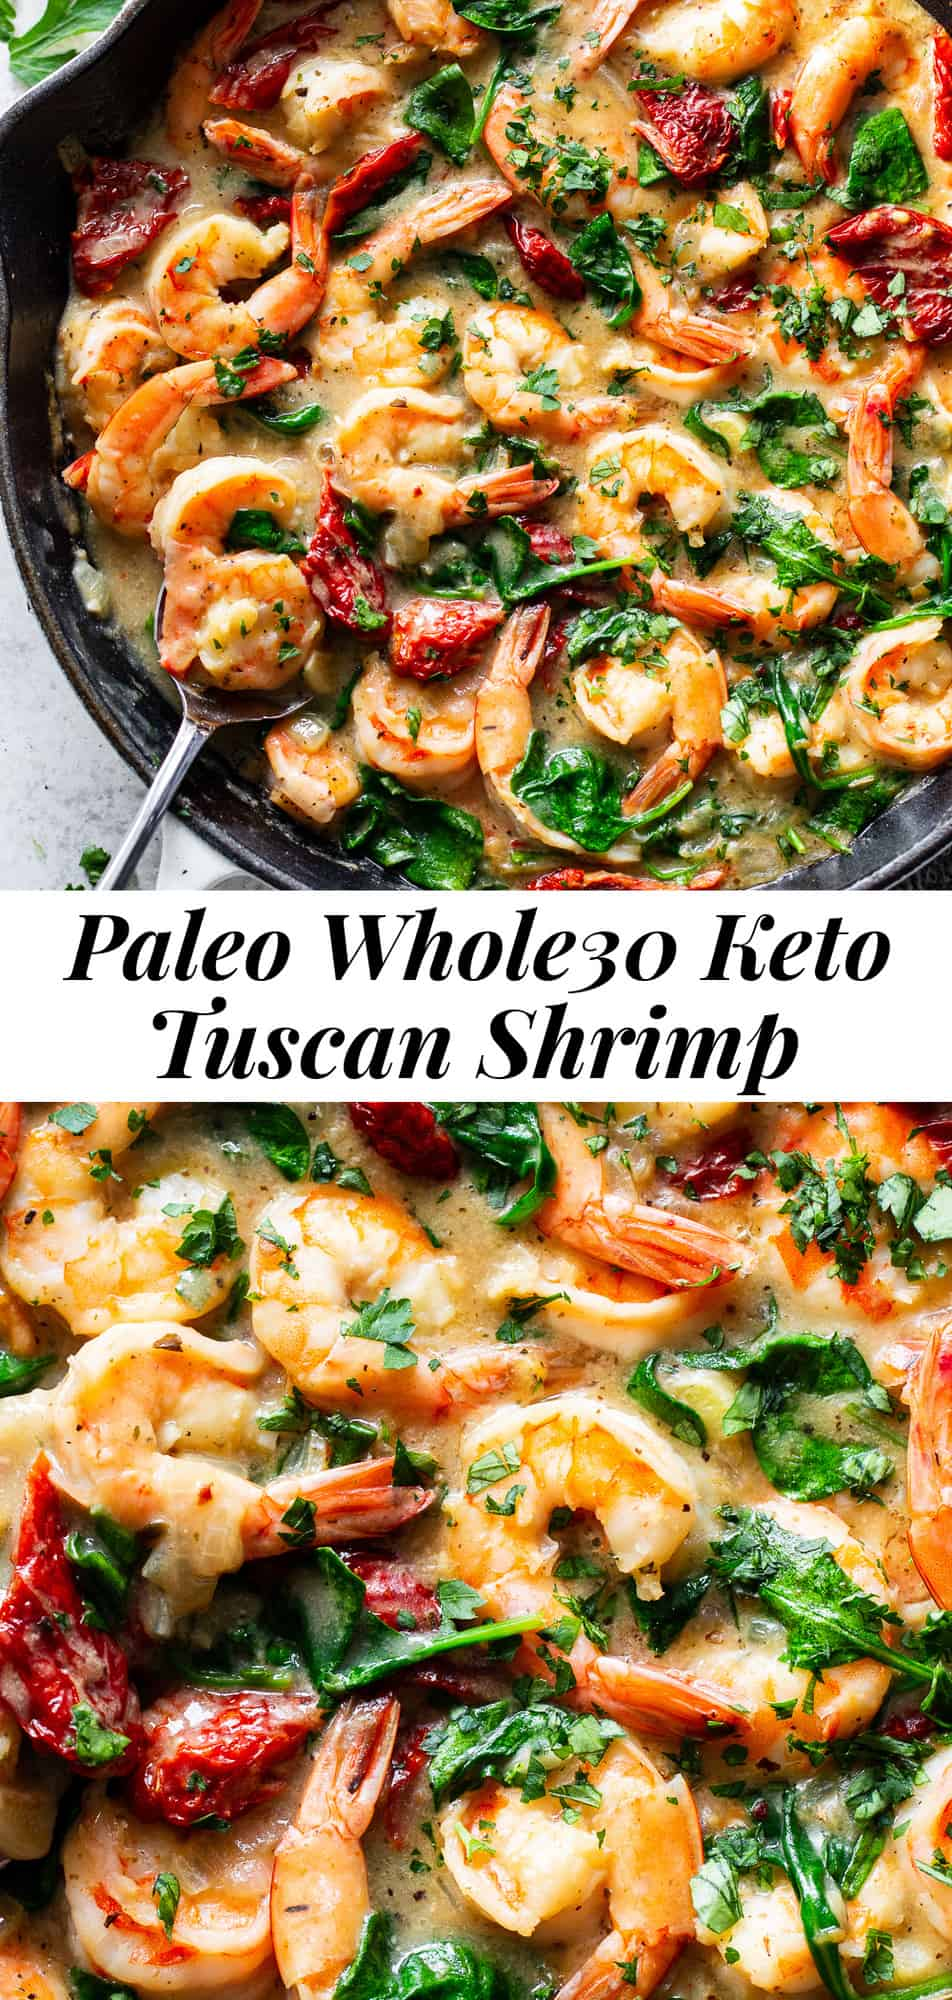 This creamy Garlic Tuscan Shrimp is made all in one skillet in just 20 minutes! It's packed with flavor, perfect for weeknights and even kid approved. This easy paleo dinner is also Whole30 compliant and low in carbs, for a healthy meal you'll want on repeat! #paleo #whole30 #keto #lowcarb